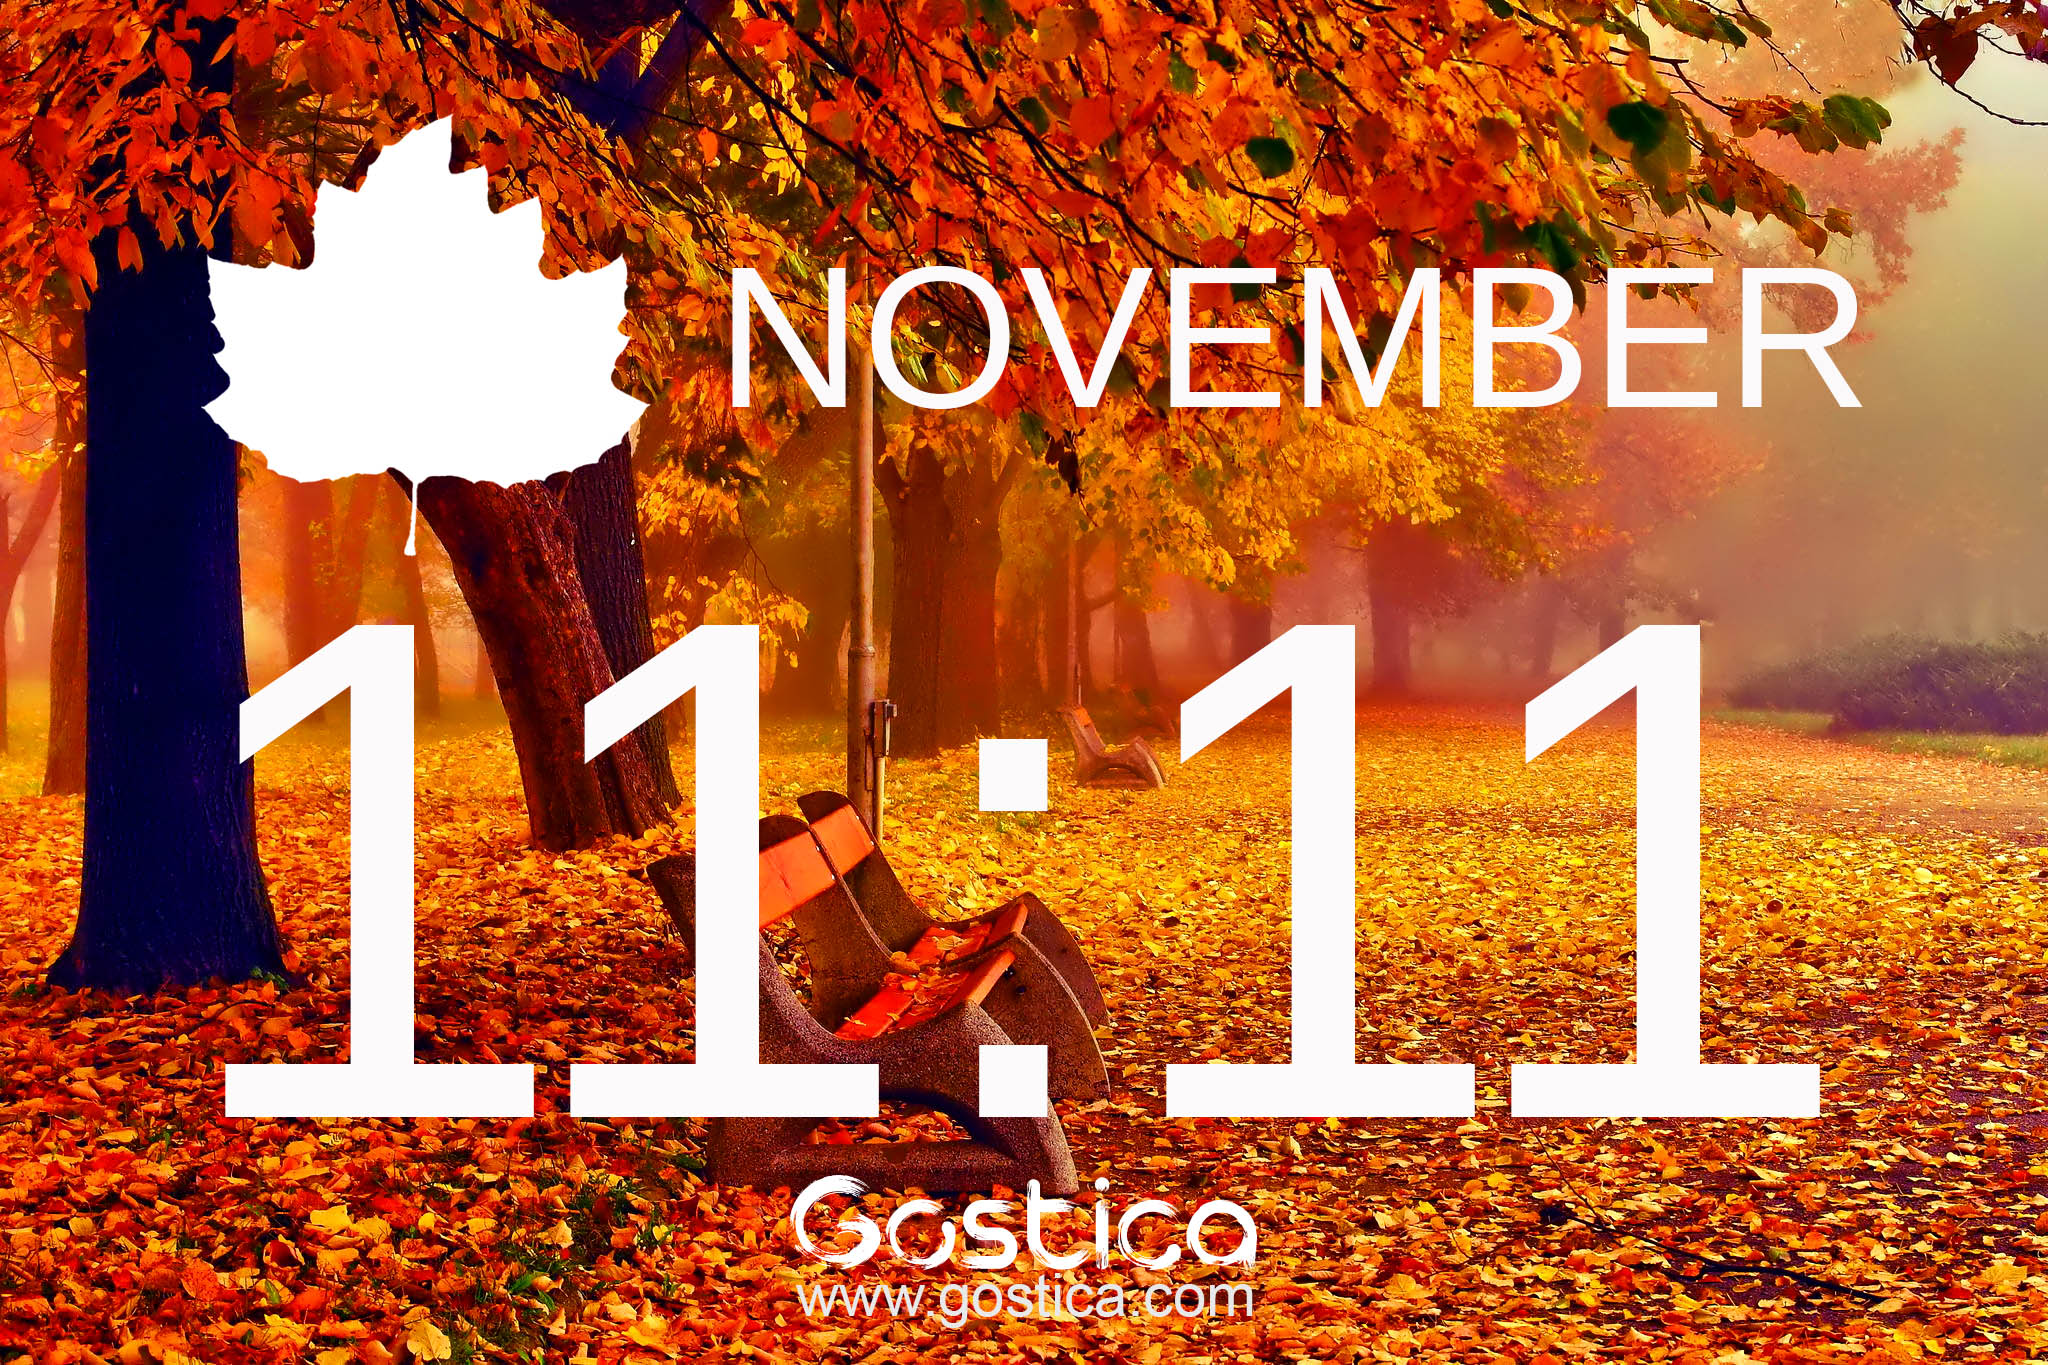 Today-is-November-11-Here-Is-The-Spiritual-Significance-Of-The-Most-Meaningful-Point-Of-The-Year-1.jpg